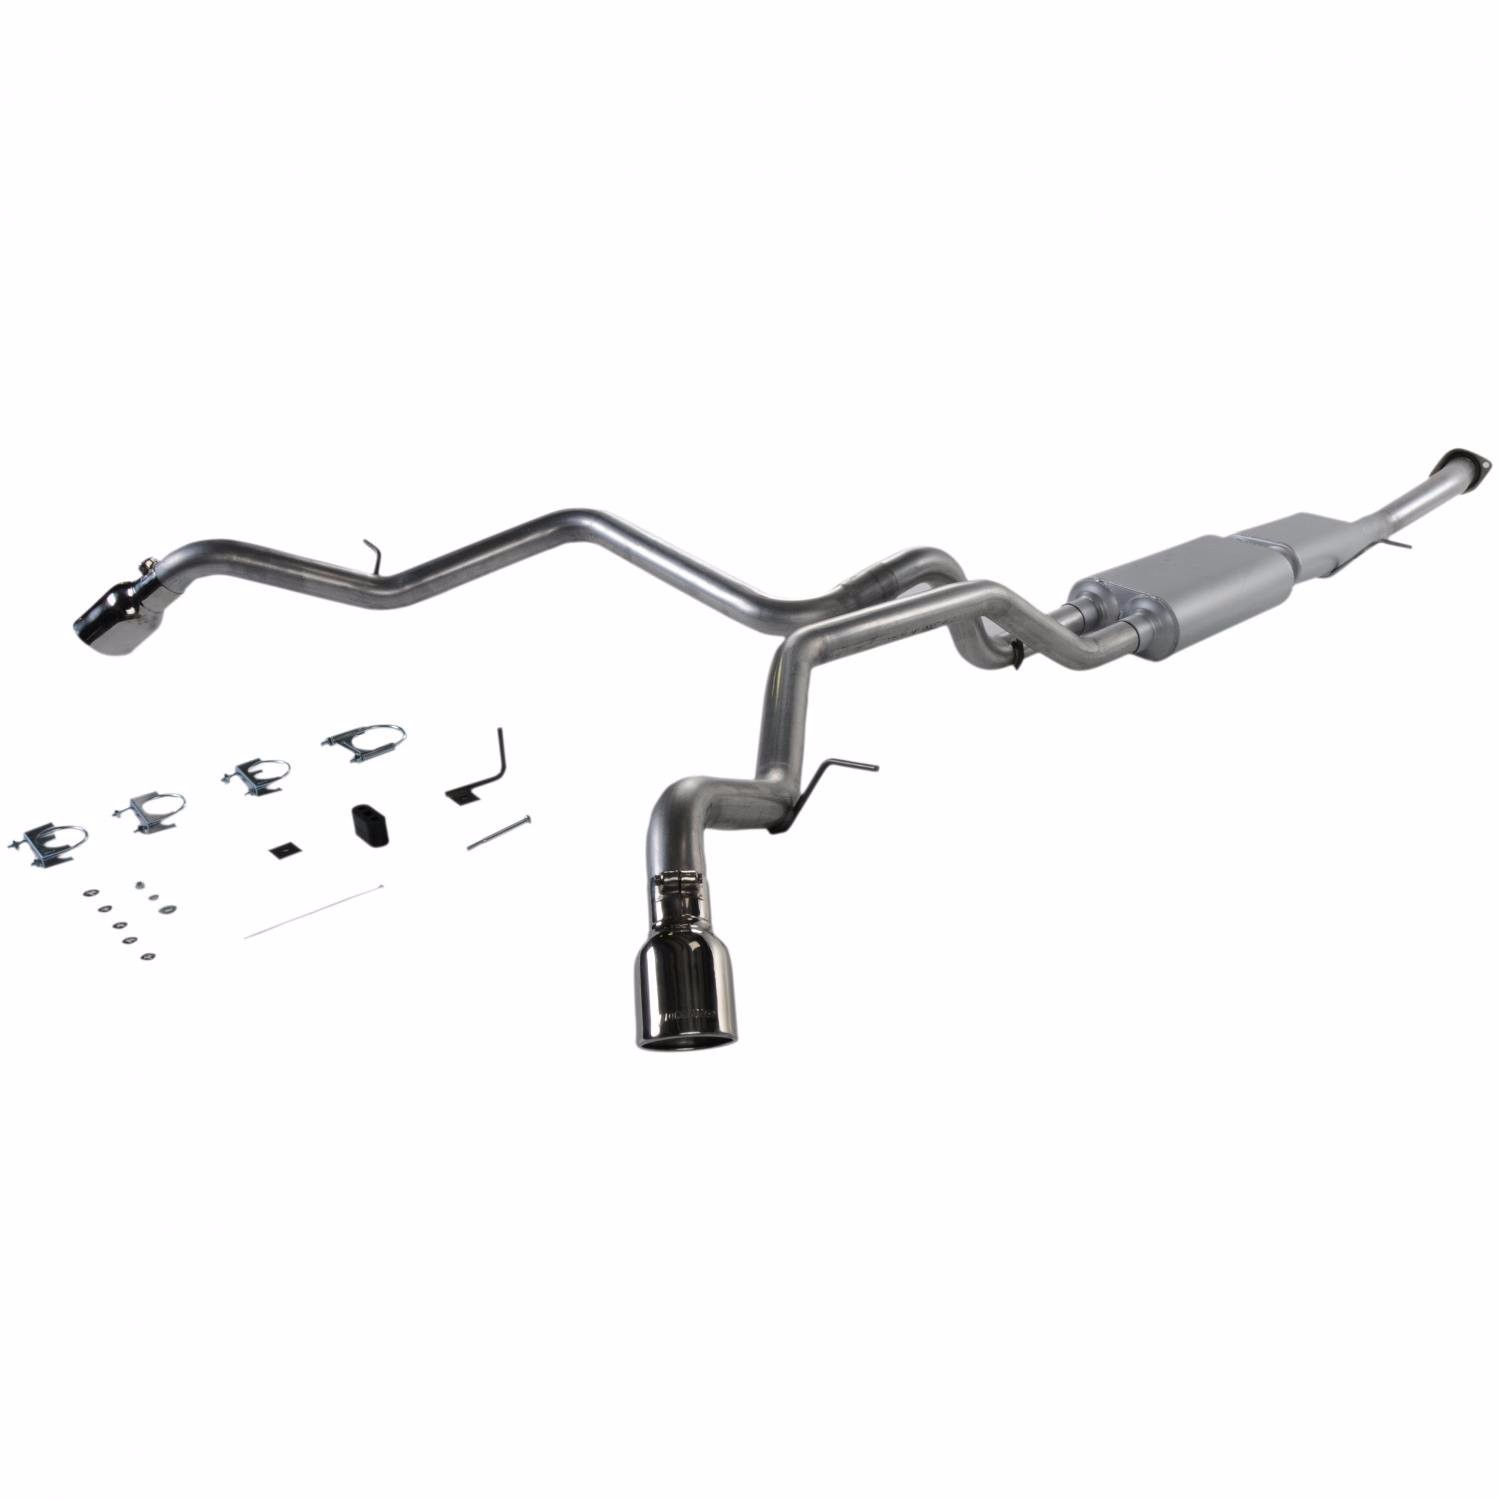 Flowmaster 817342 American Thunder Series Cat Back Exhaust